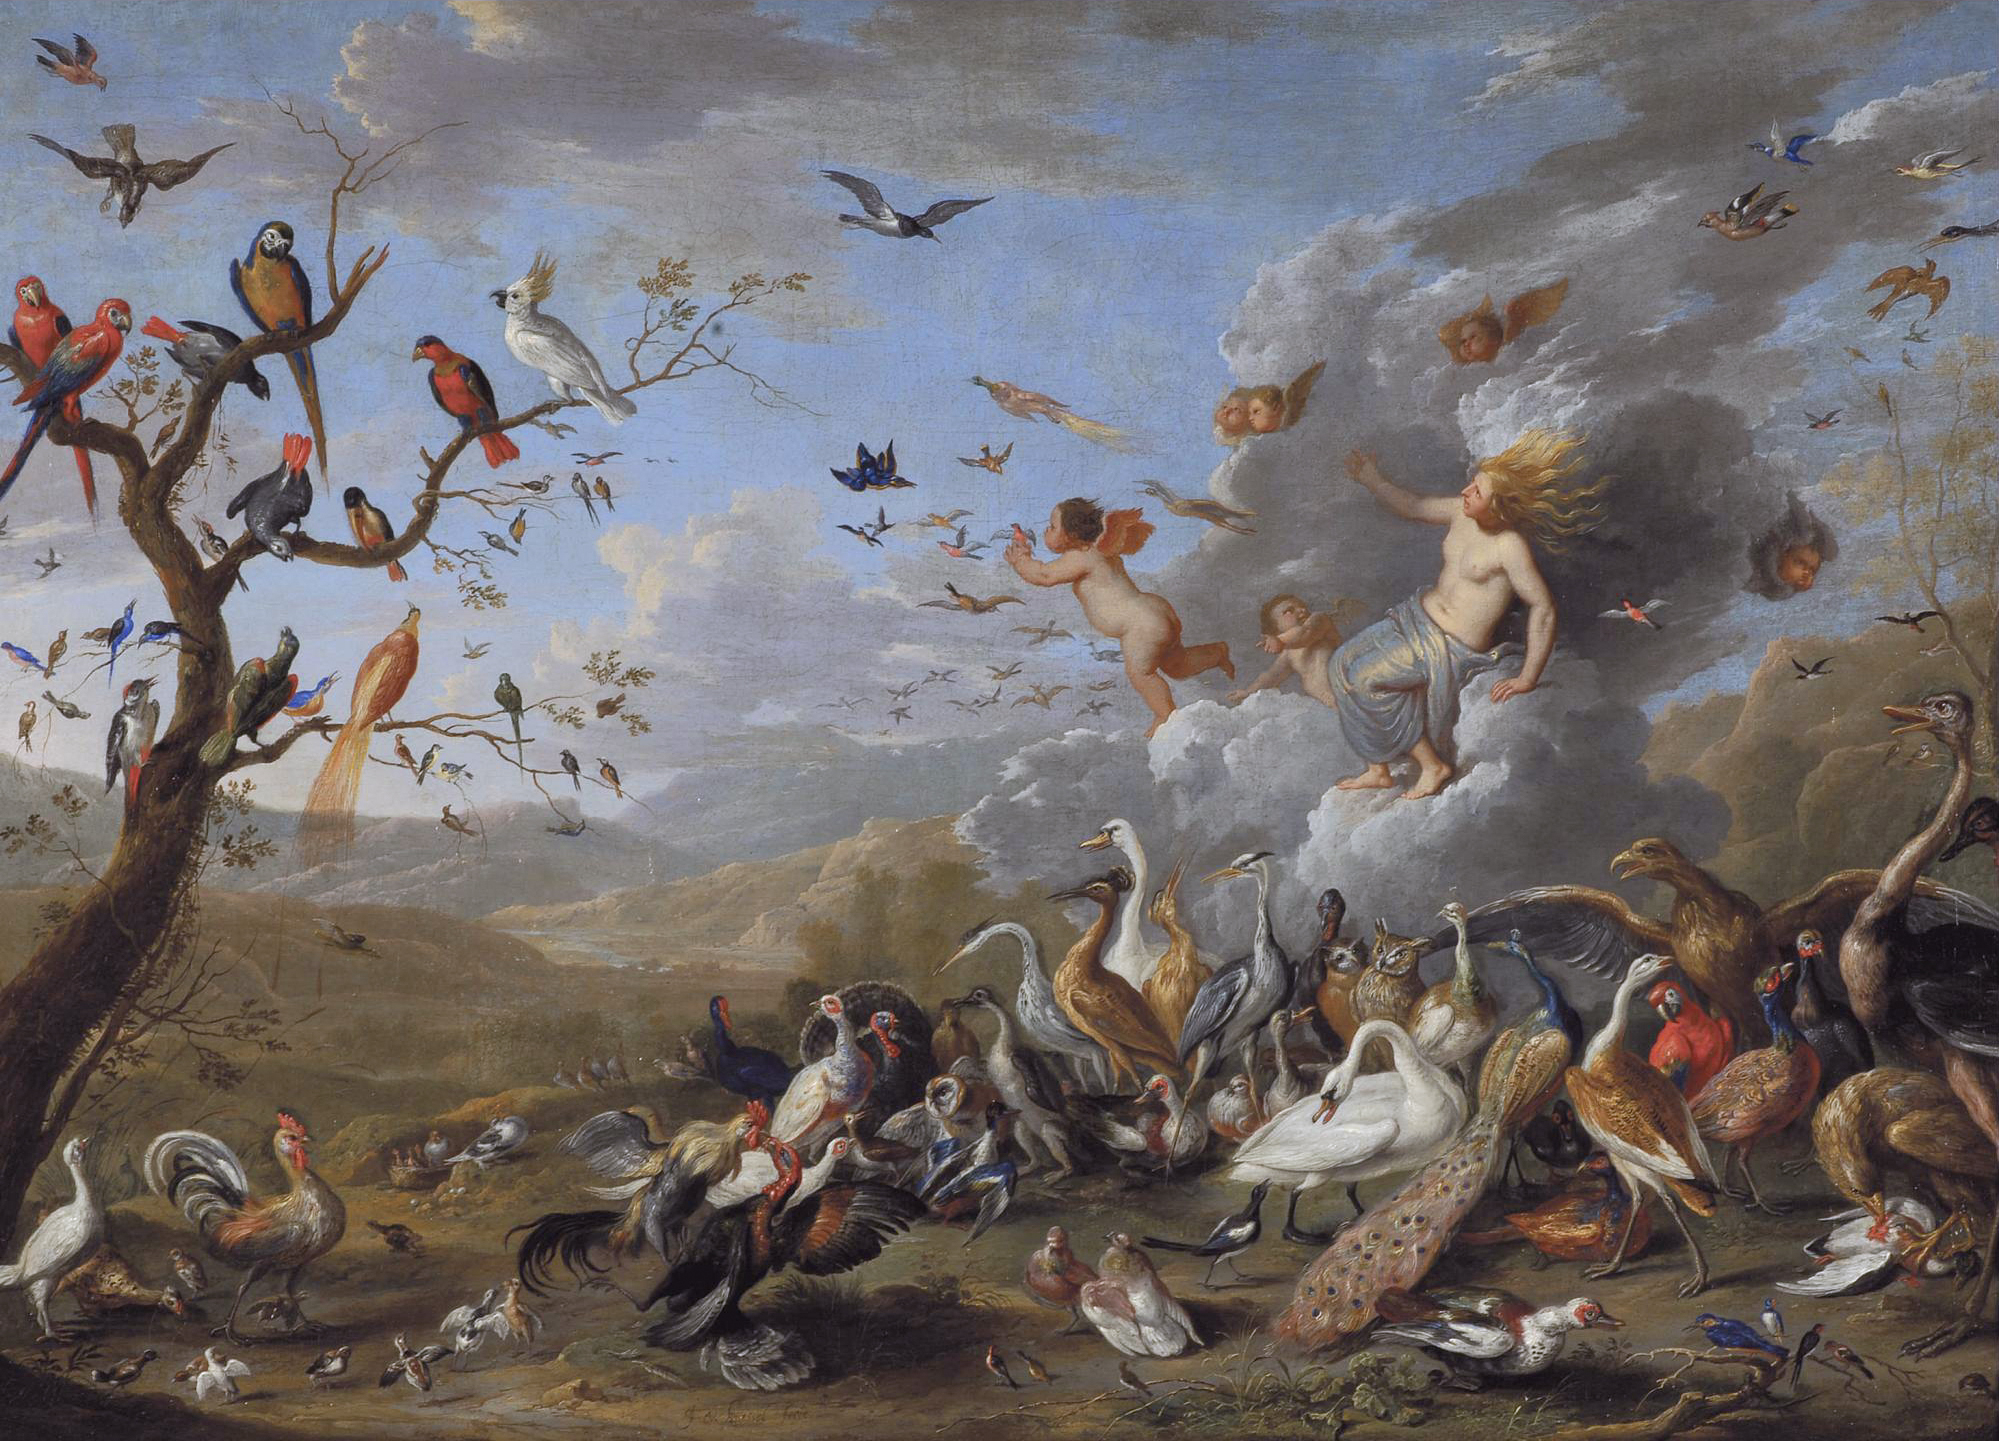 File:Allegory of Air by Jan van Kessel (1626-1679).jpg - Wikimedia ...